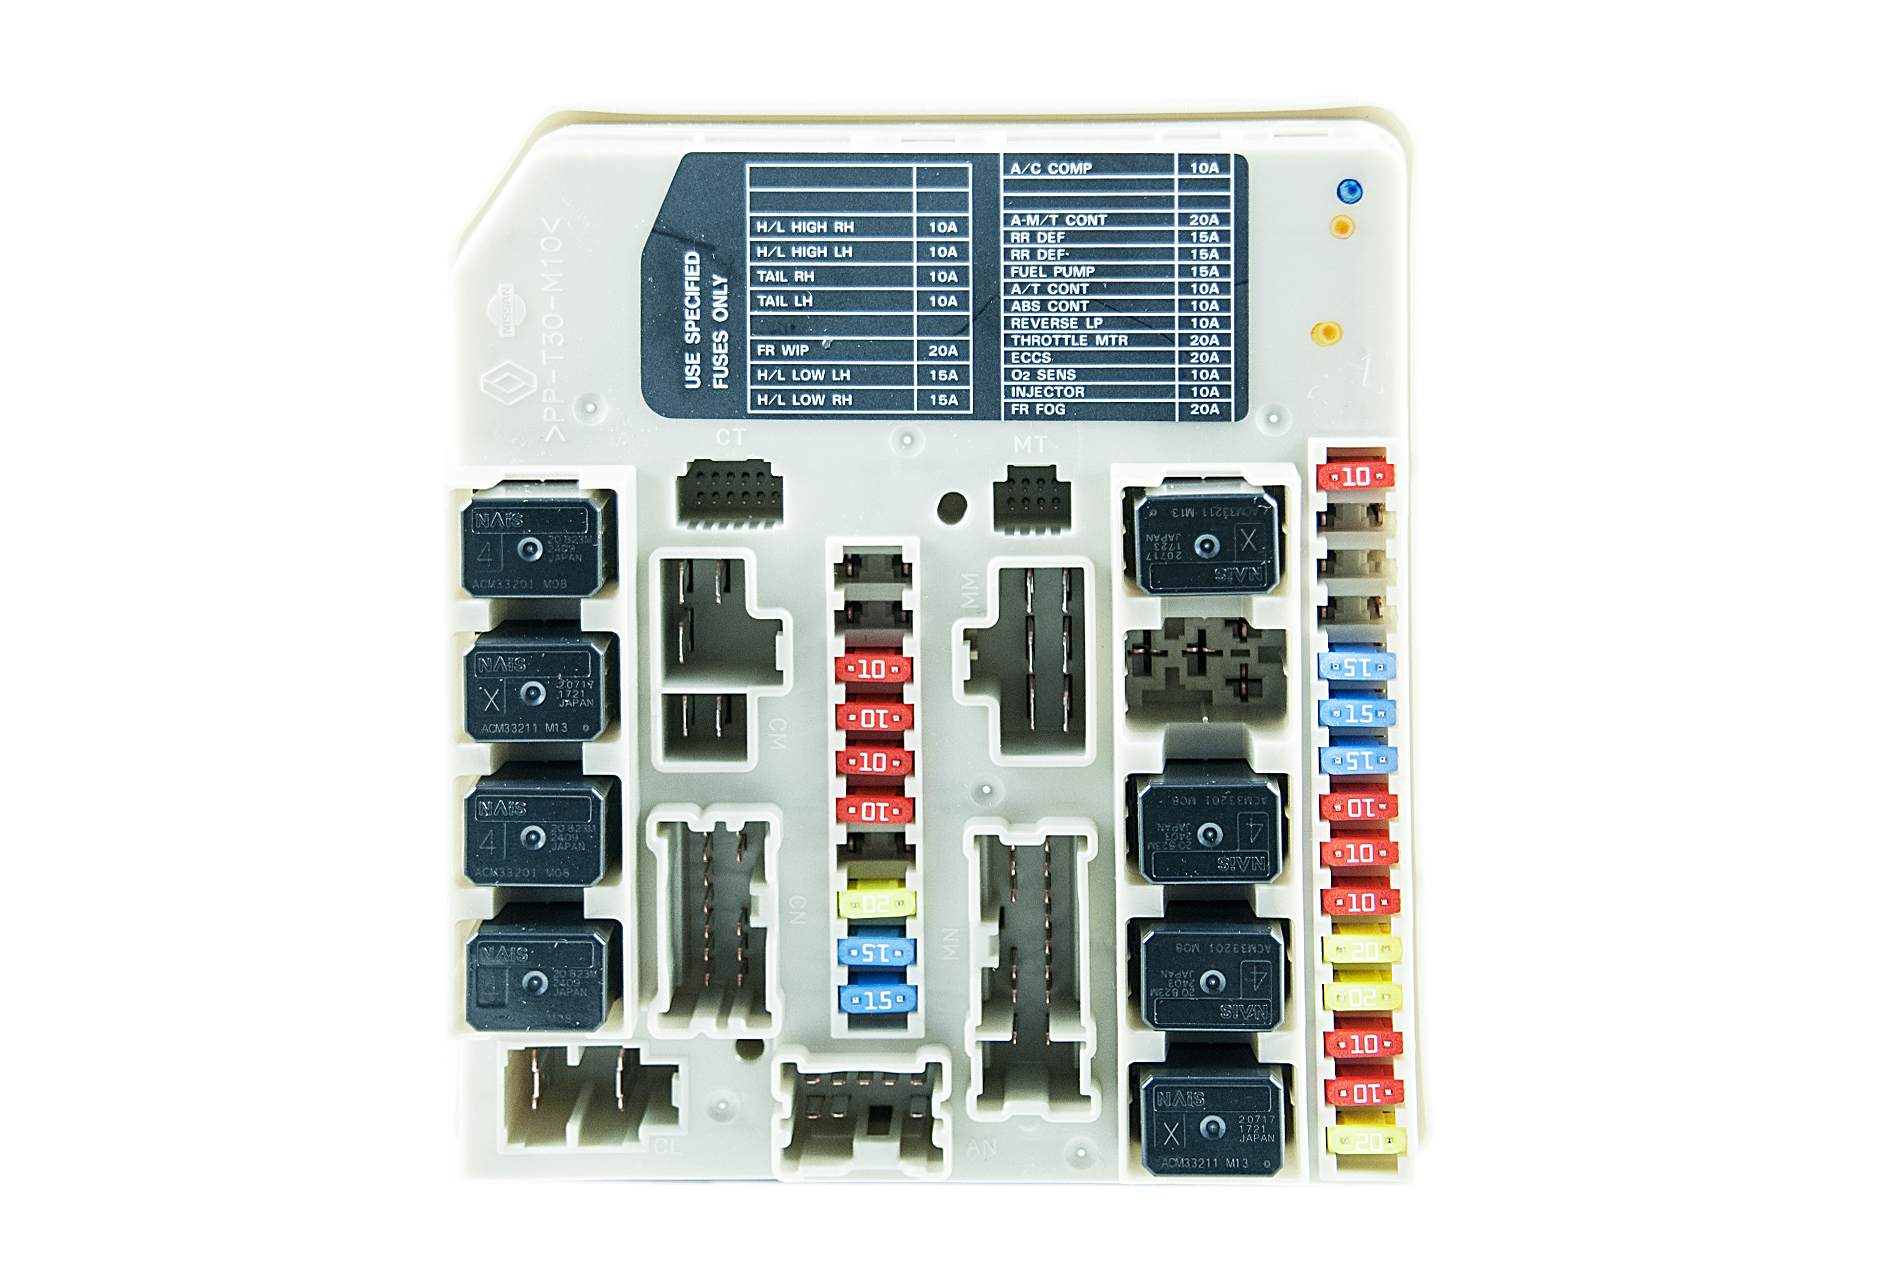 284B7AX61Aa nissan genuine micra note ipdm power distribution module 2016 nissan versa note fuse box location at bayanpartner.co